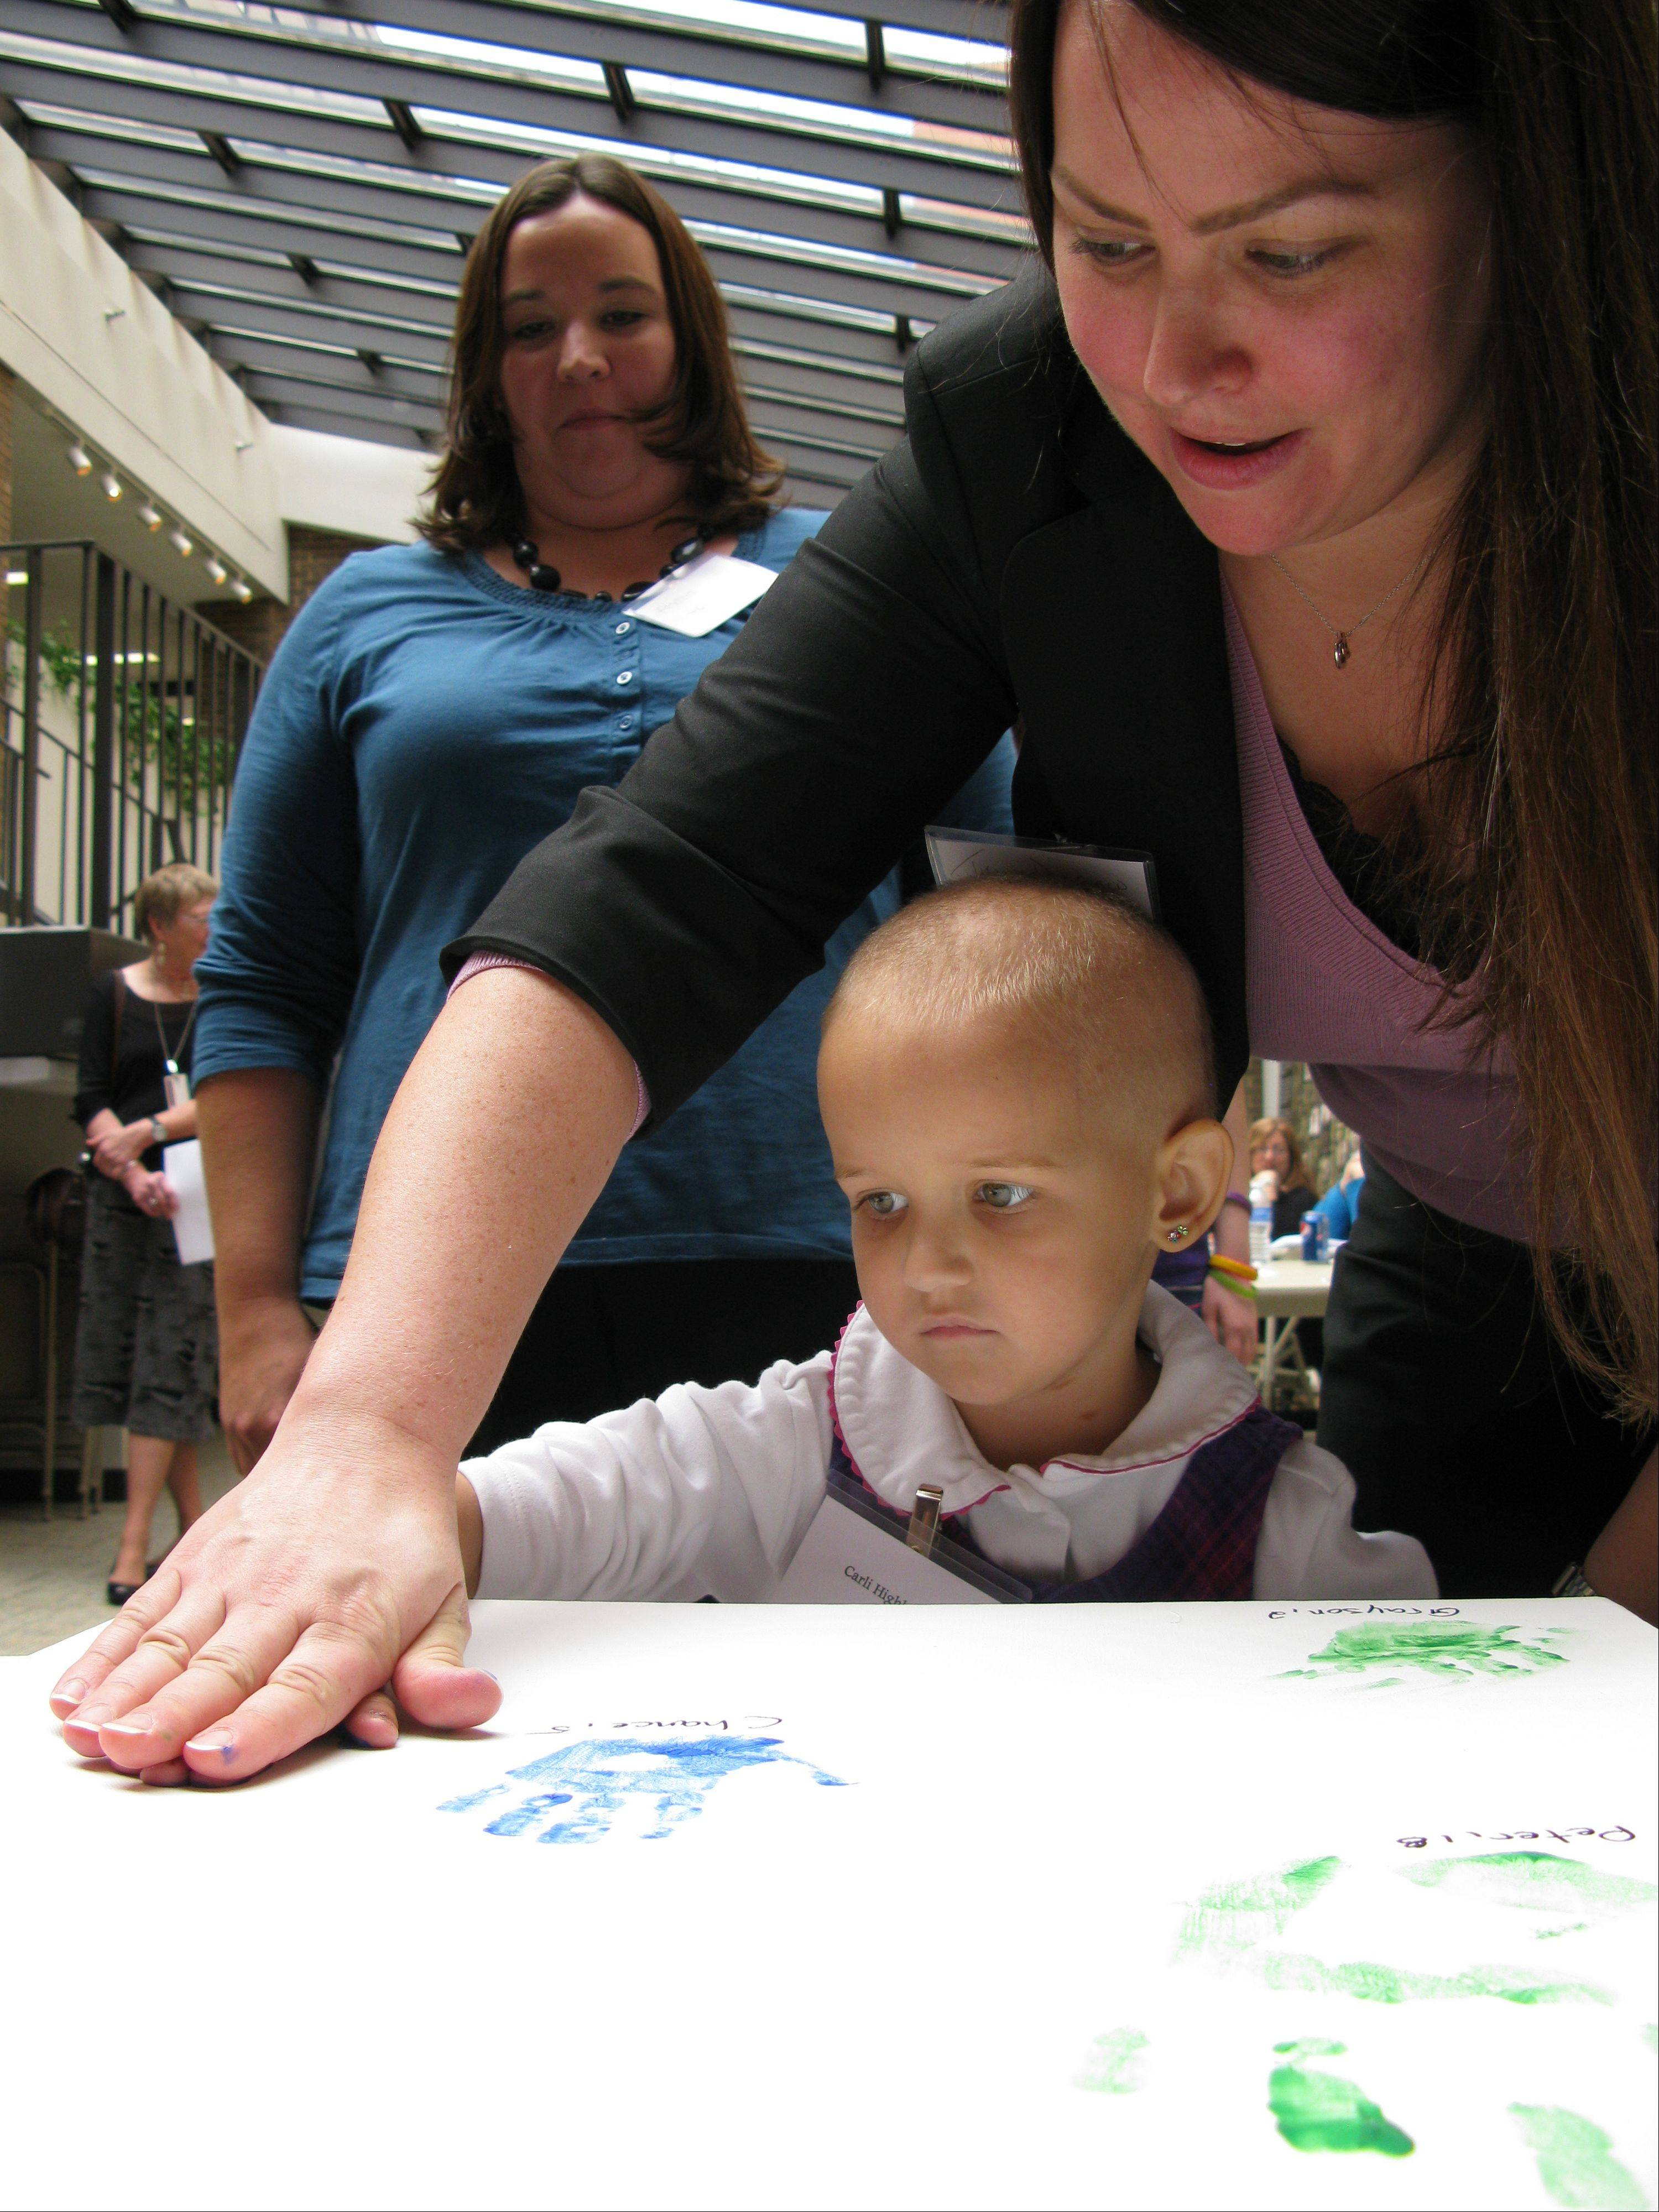 Hyundai employee Tricia Dunfield helps 4-year-old Carli Highberger of Lombard make a hand imprint on canvas while Carli's mother, Andrea, watches. Carli is being treated at Advocate Lutheran General Children's Hospital in Park Ridge.